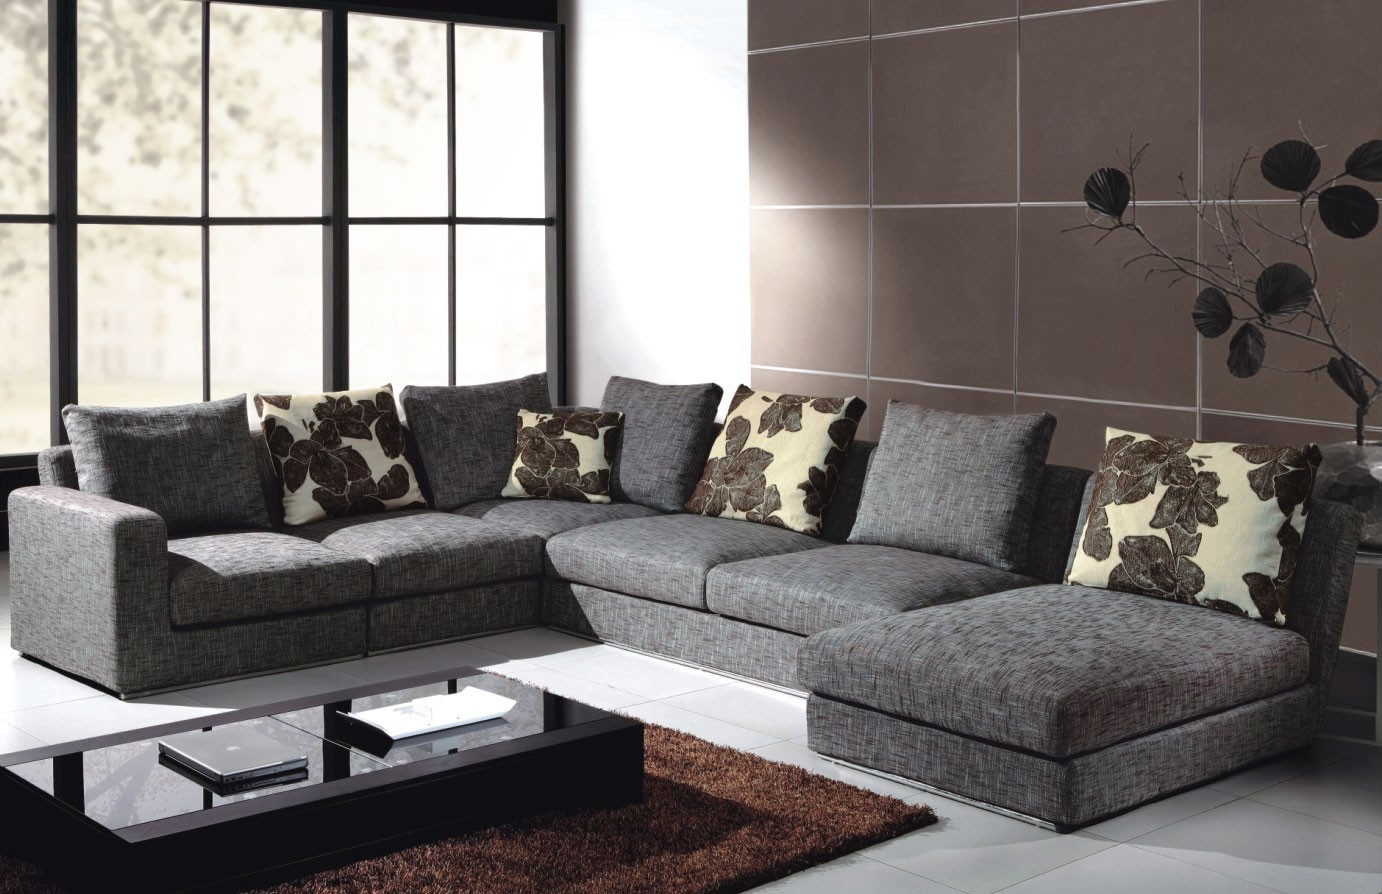 grey Leather Sectional Couches With cushions on white ceramic floor plus brown carpet for inspiring living room decor ideas